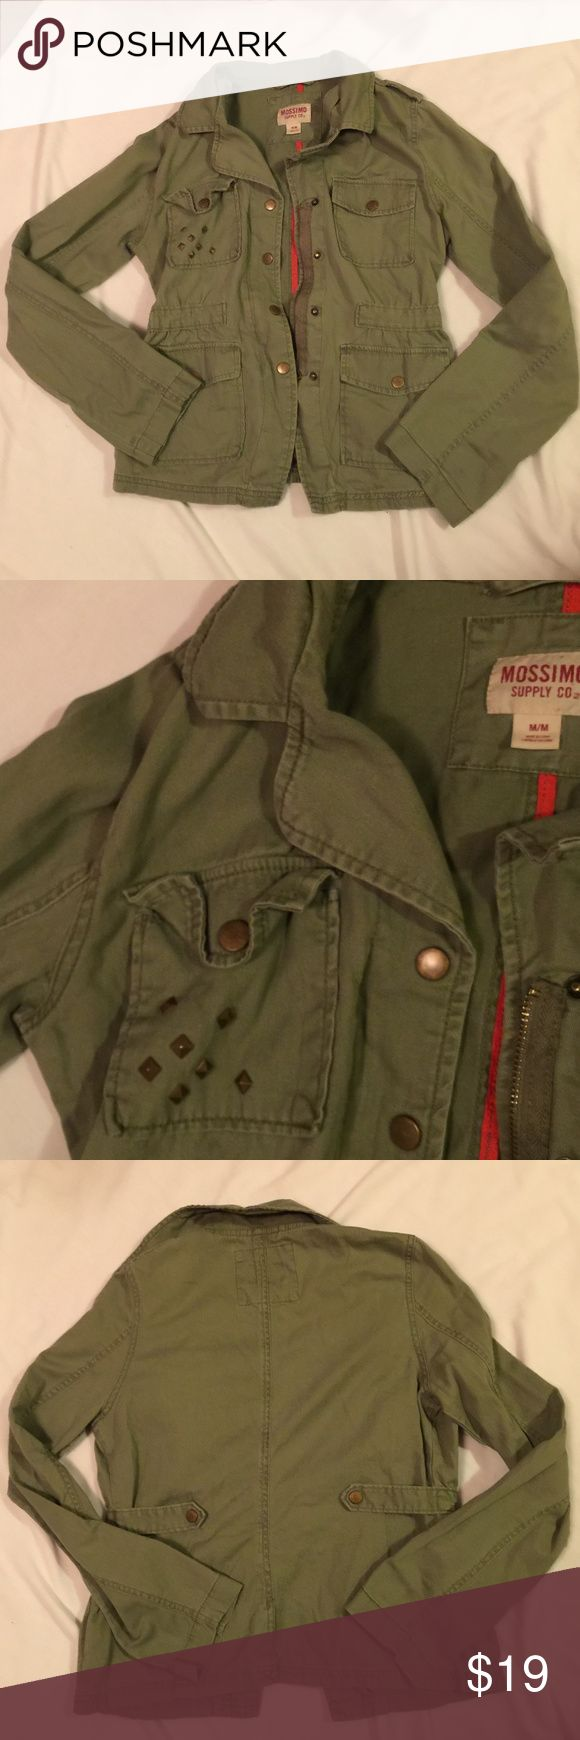 Green Military Jacket Great condition juniors olive green military jacket. Mossimo Supply Co. Jackets & Coats Utility Jackets